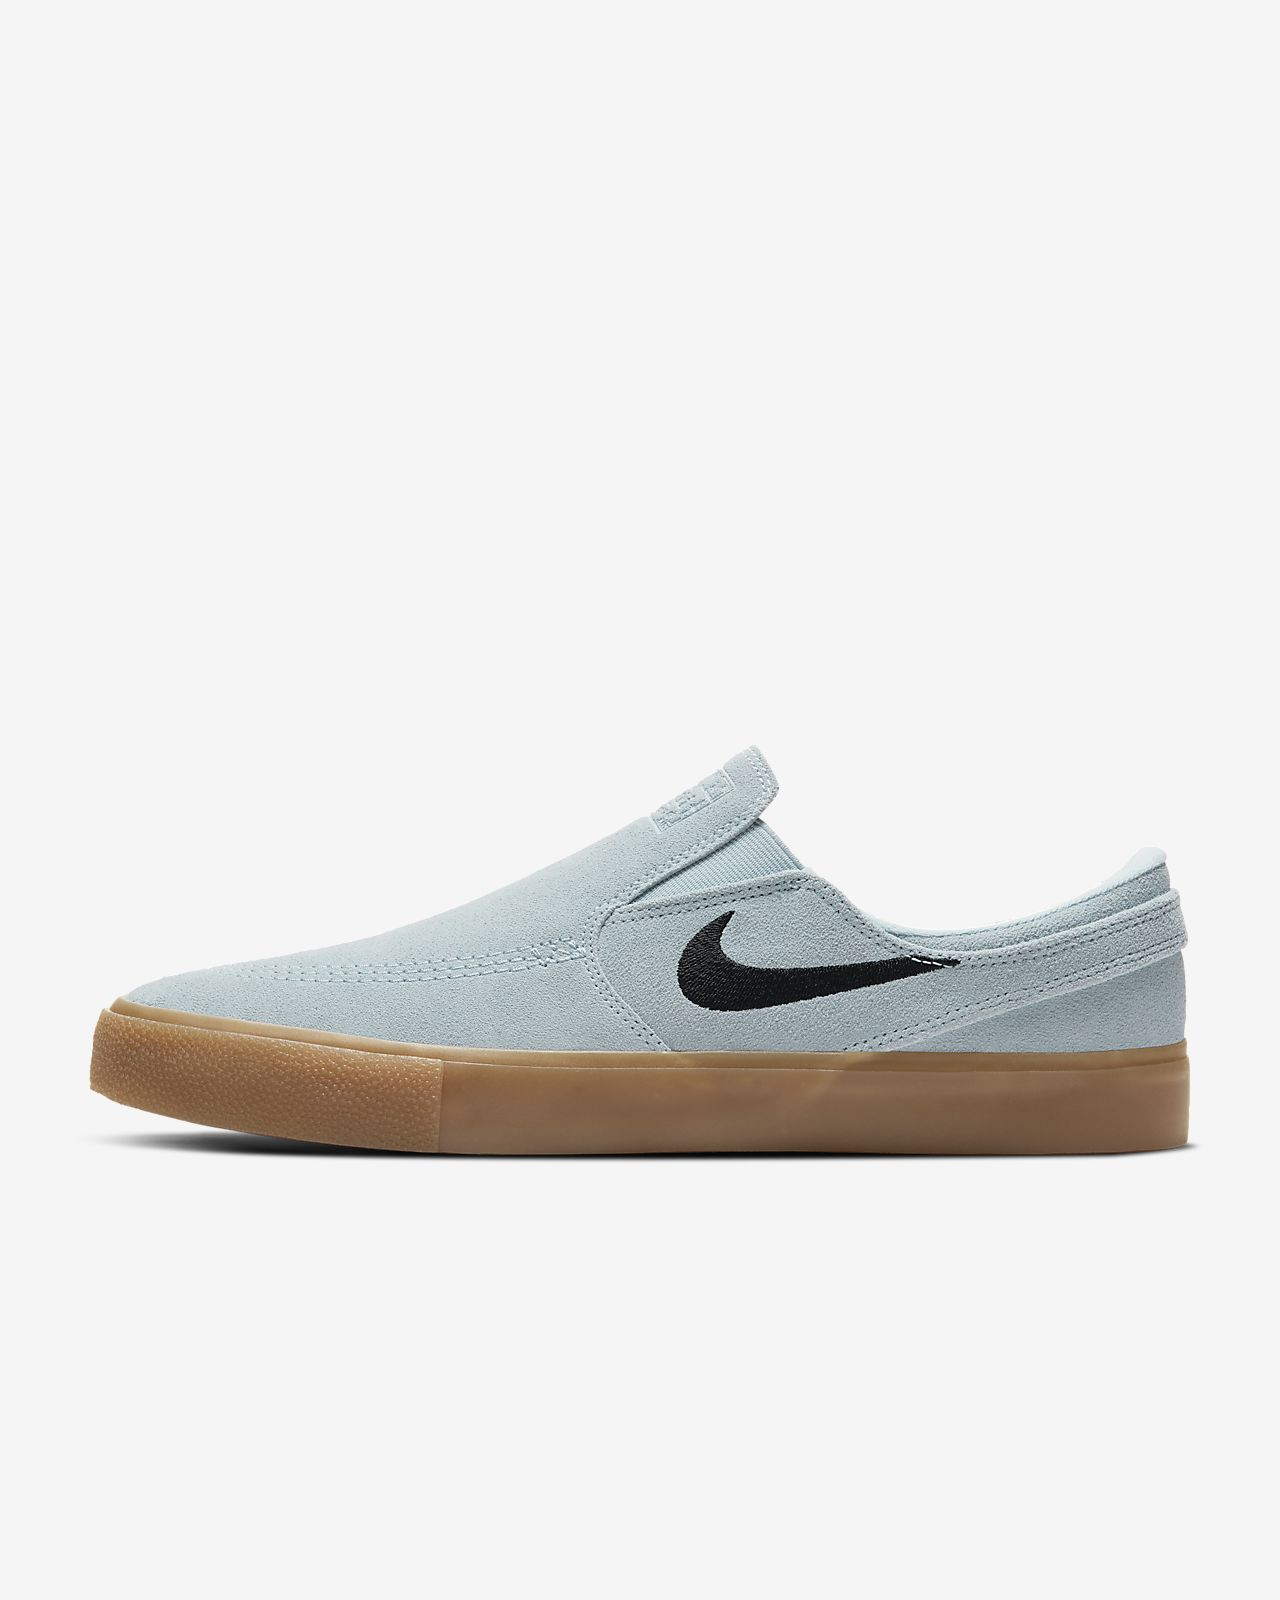 jefe Prevención Generosidad  nike sb slip on sale Shop Clothing & Shoes Online